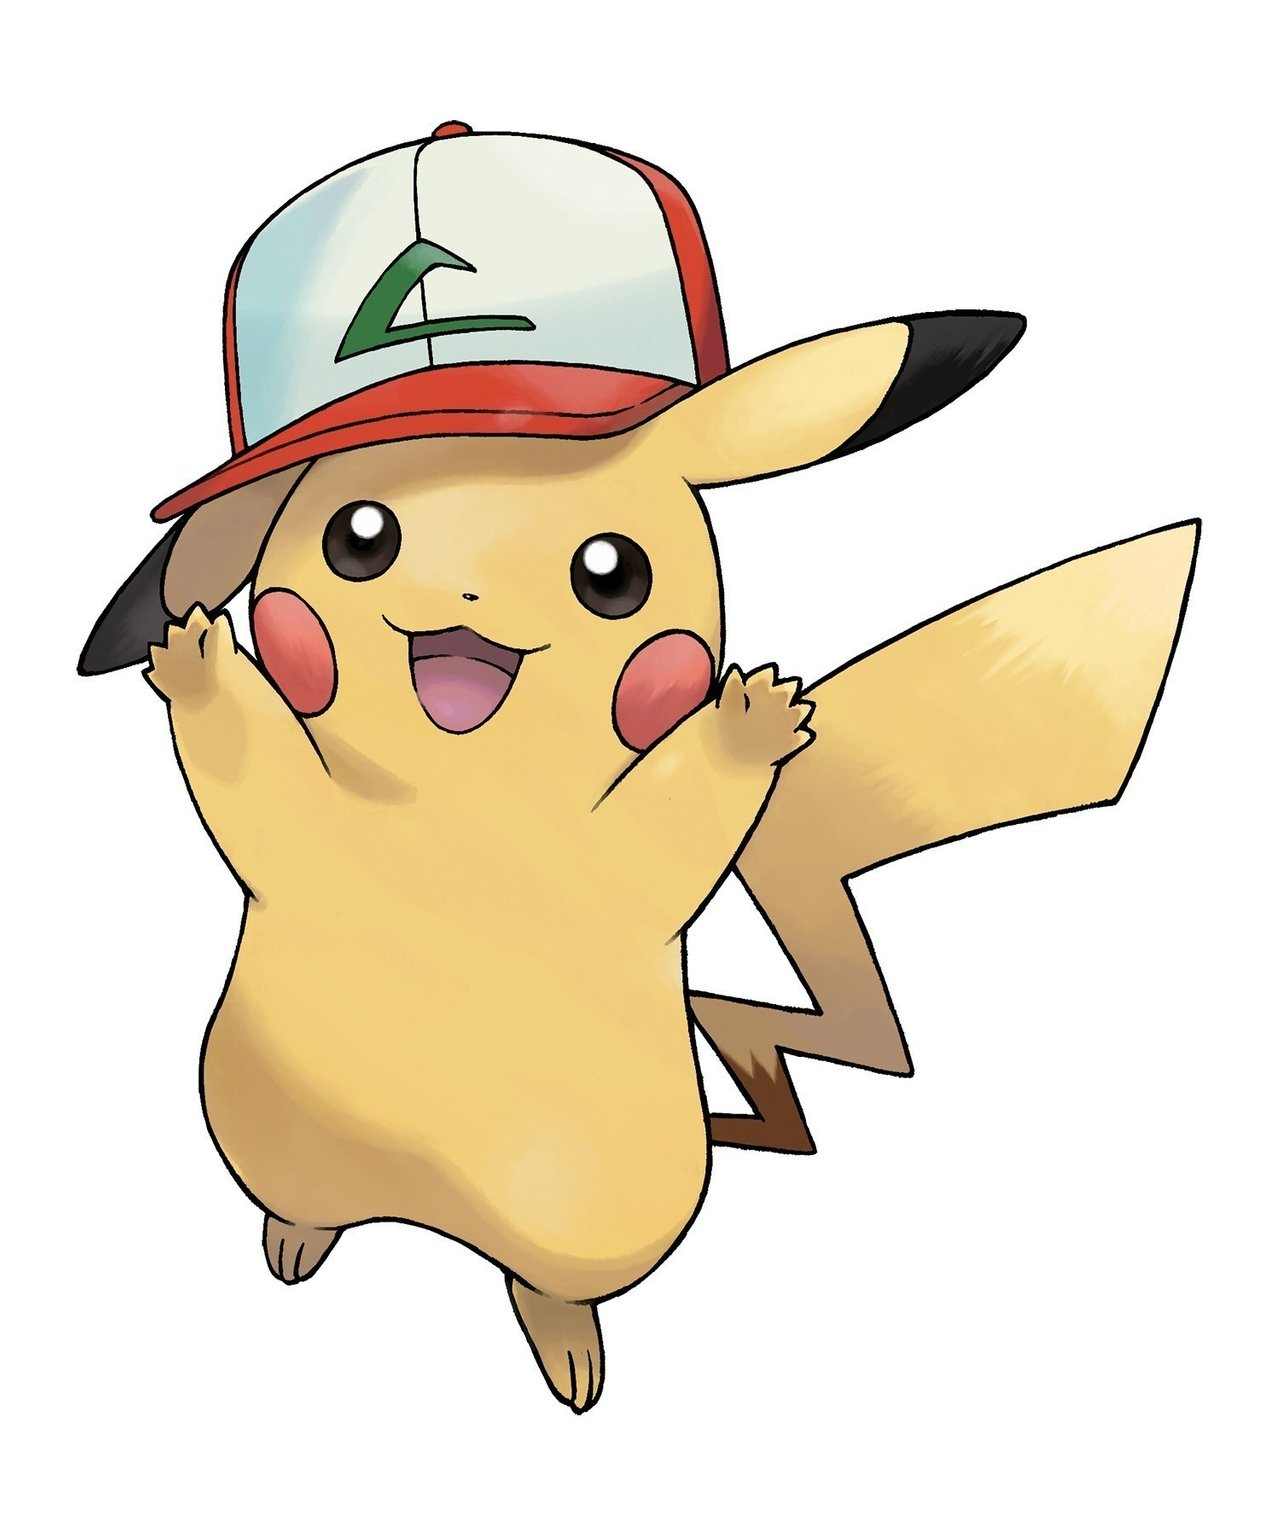 1280x1536 Ash's Pikachu Event, New Dubbed Pokemon The Movie I Choose You